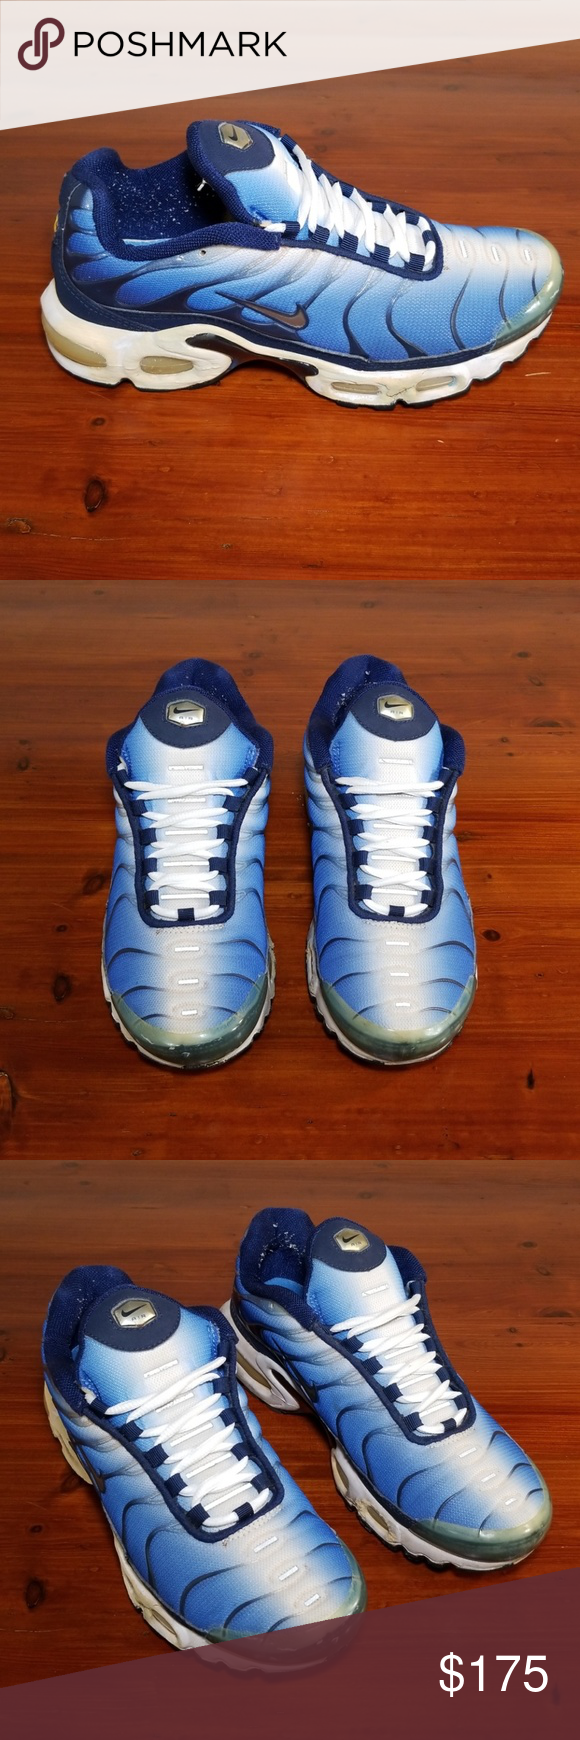 sports shoes 0f8d6 9077e 1999 Nike Air Max Plus TN. Original Hyper Blue. 7. Deadstock ...